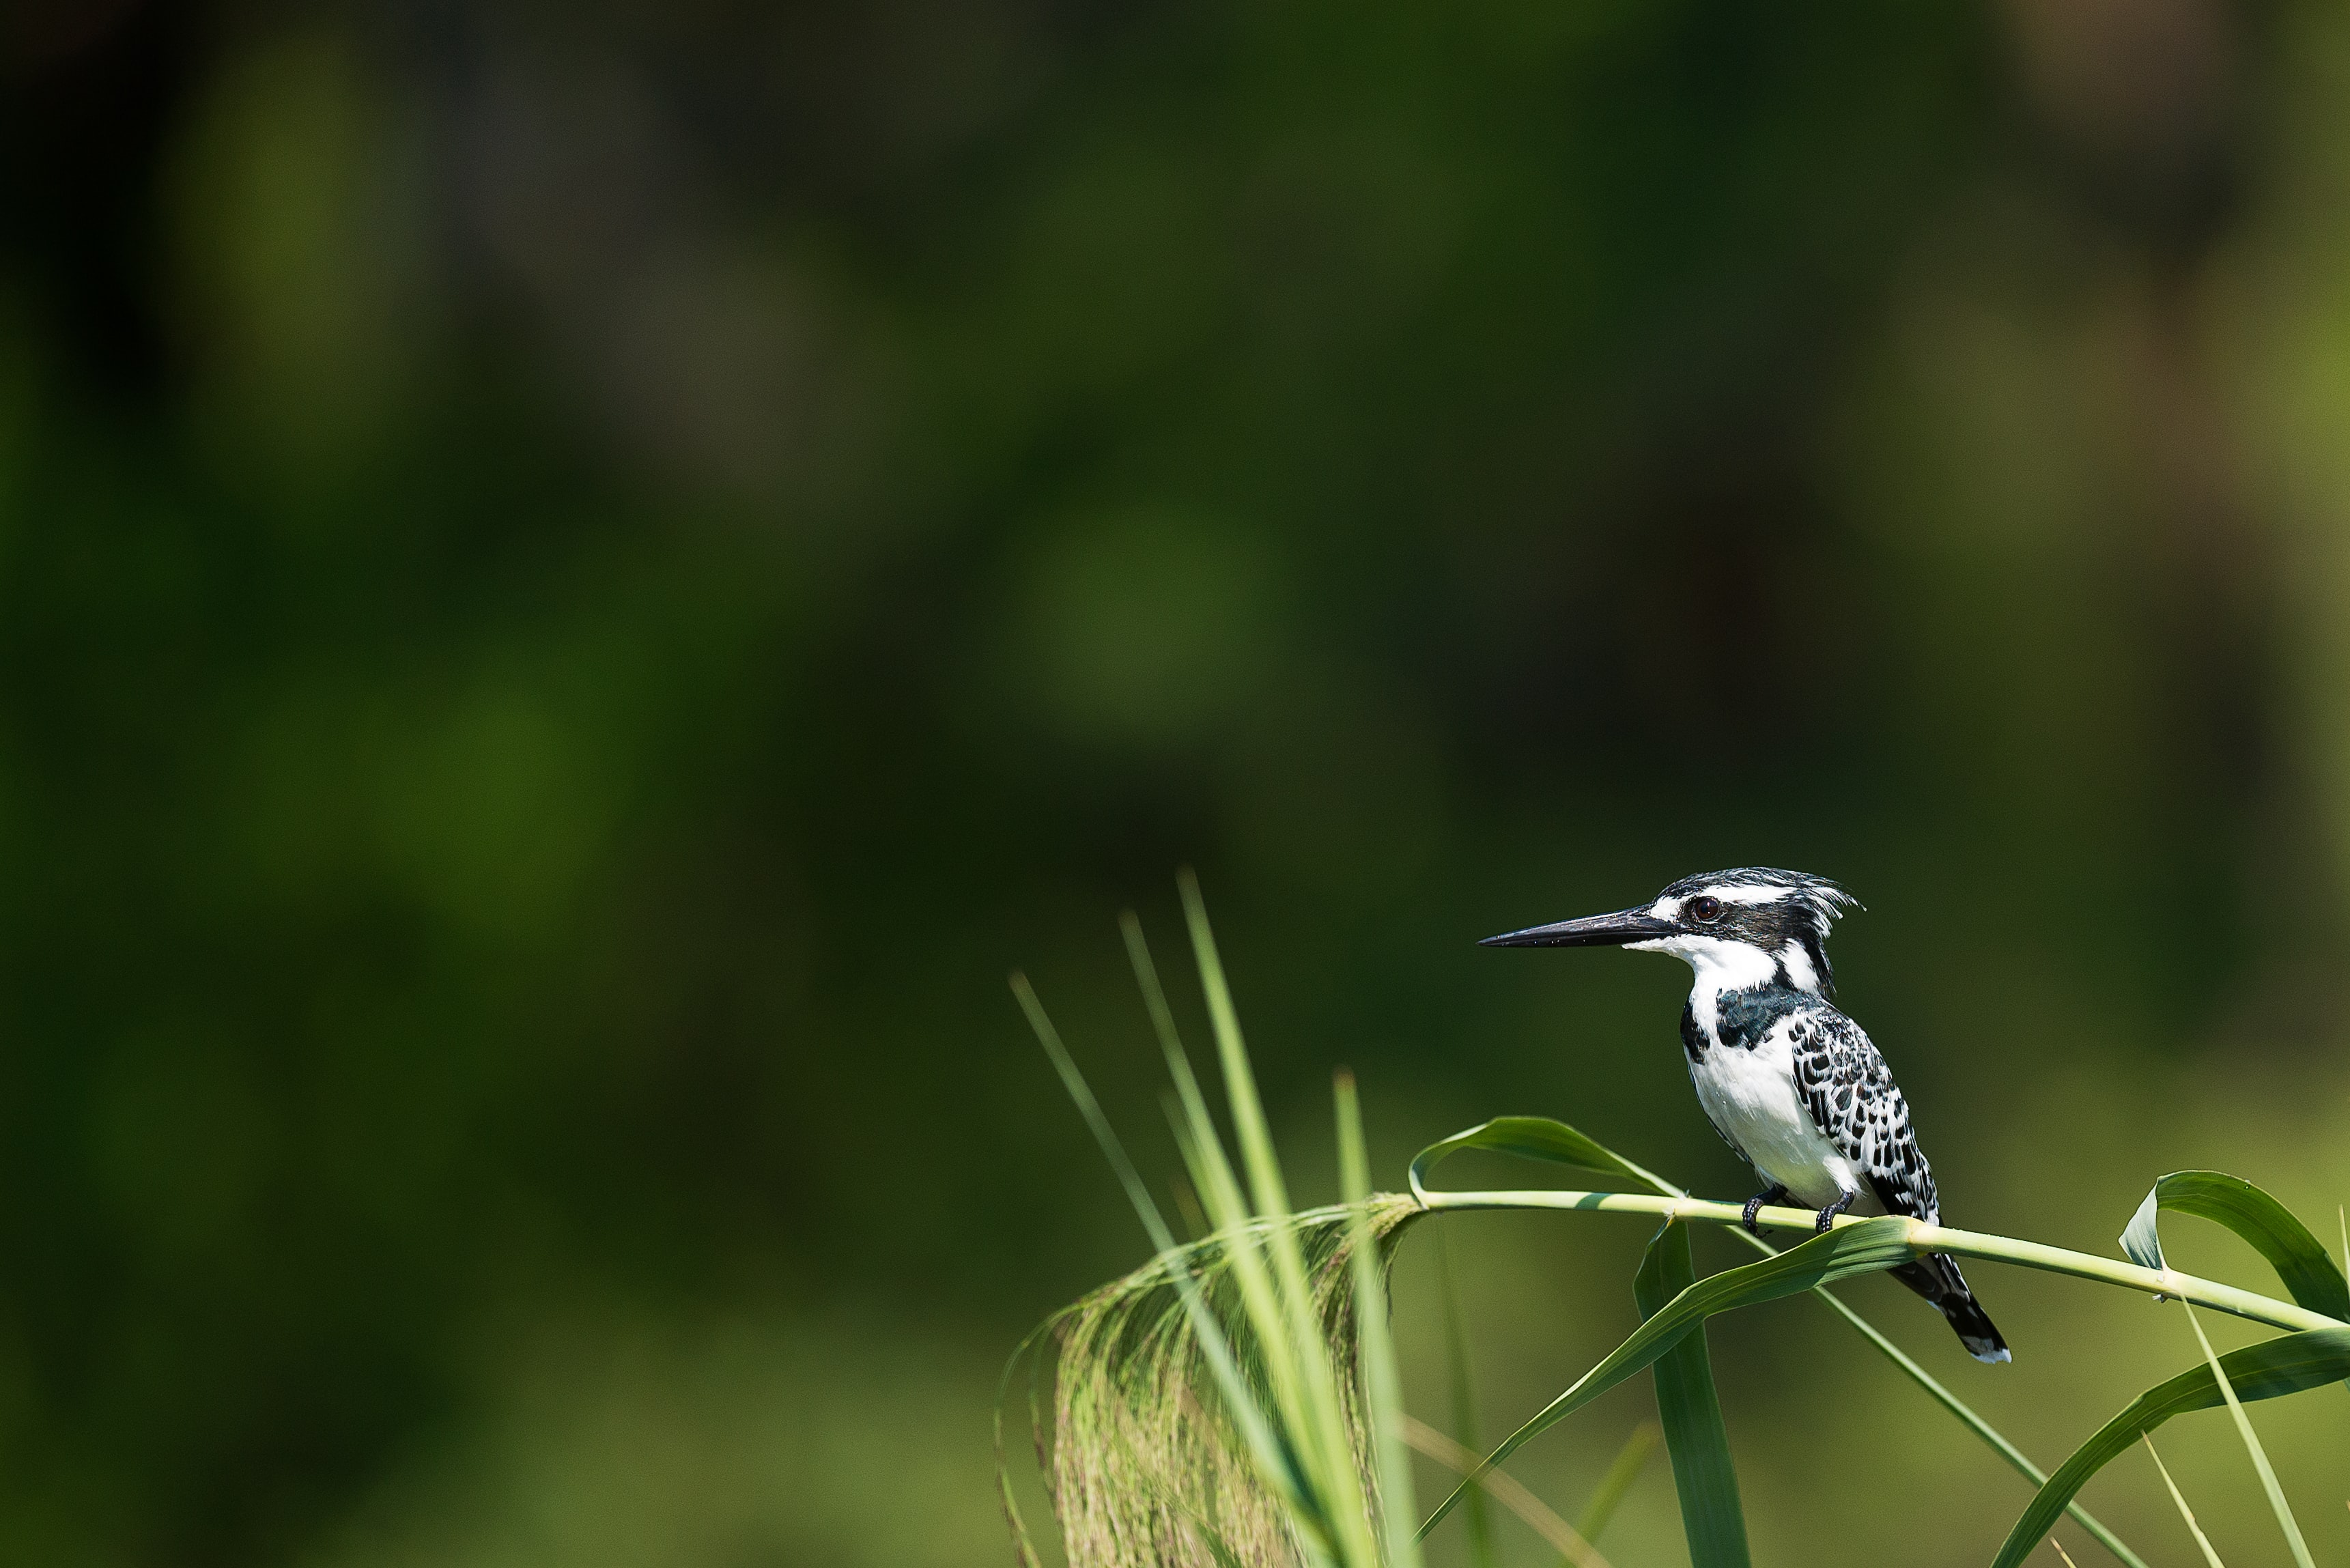 shallow focus photography of black and white woodpecker perched on grass stem